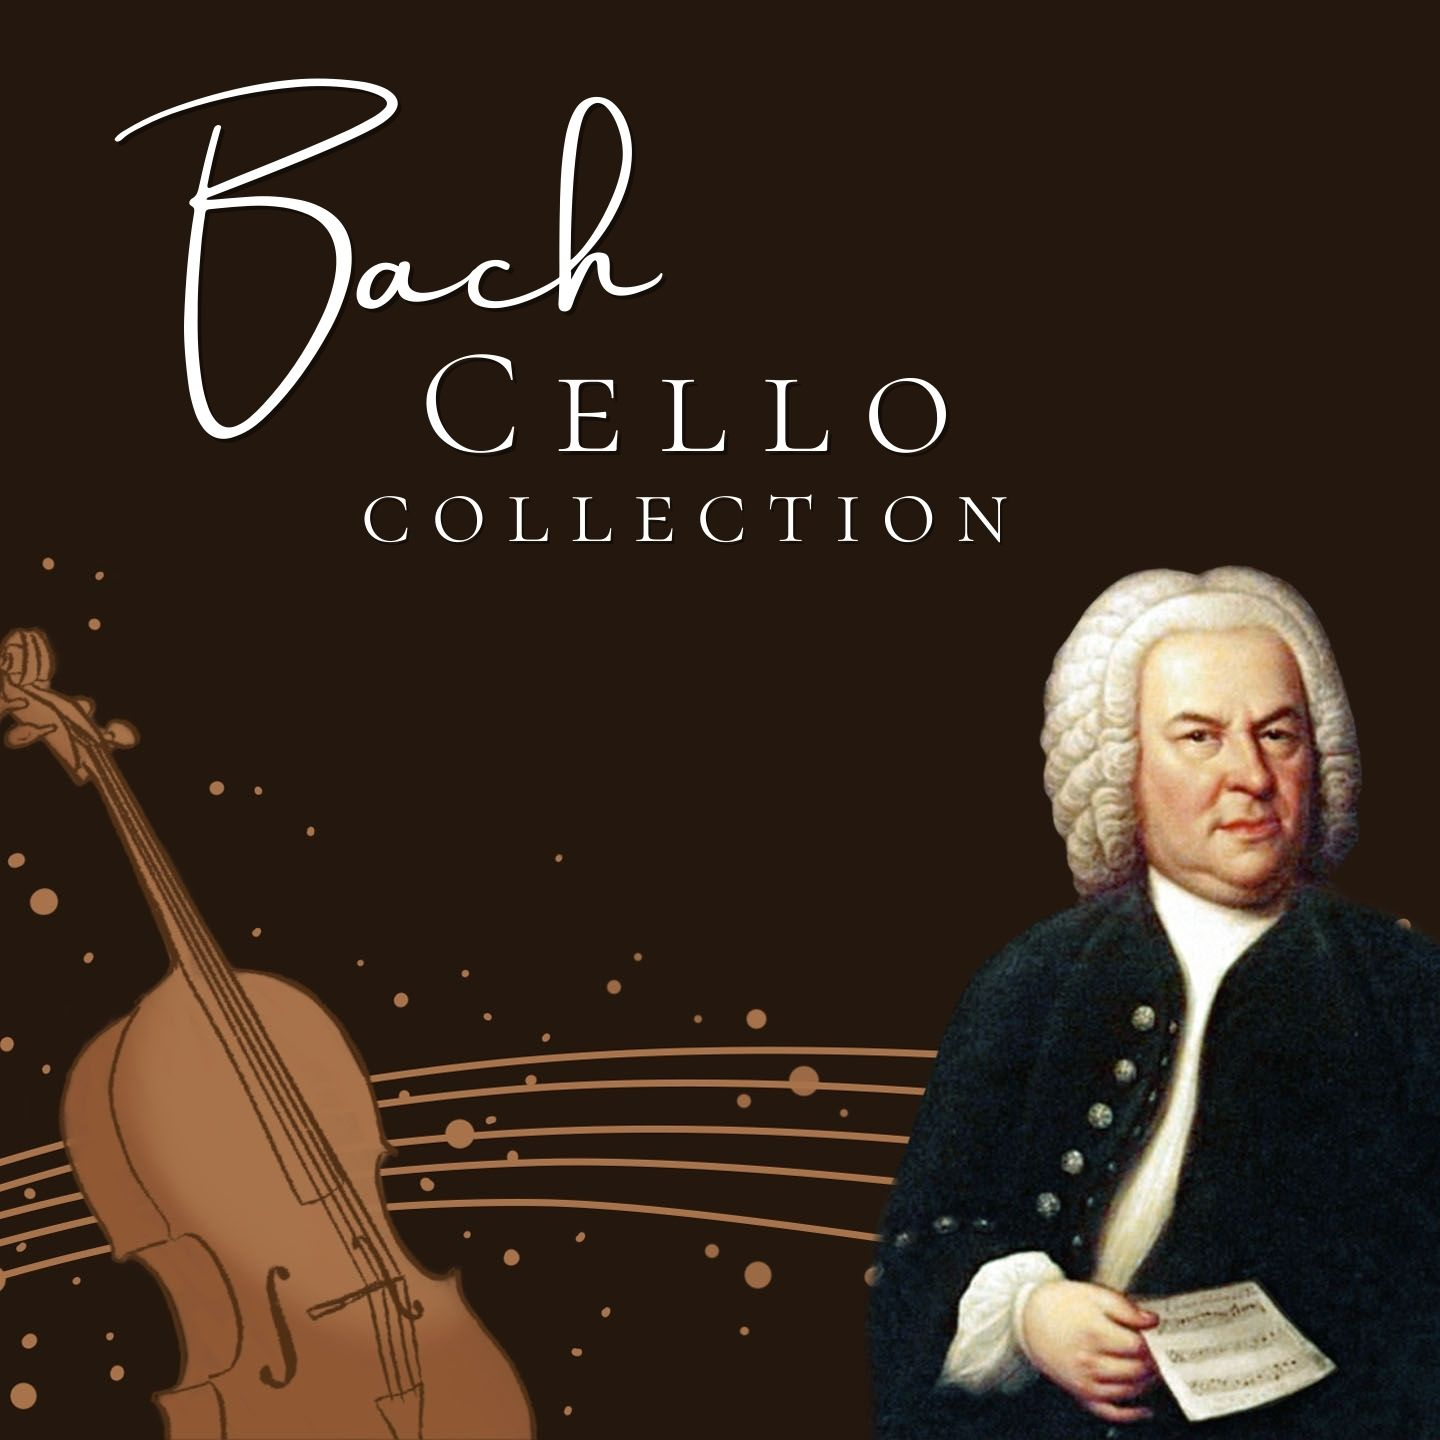 Bach: Cello Collection